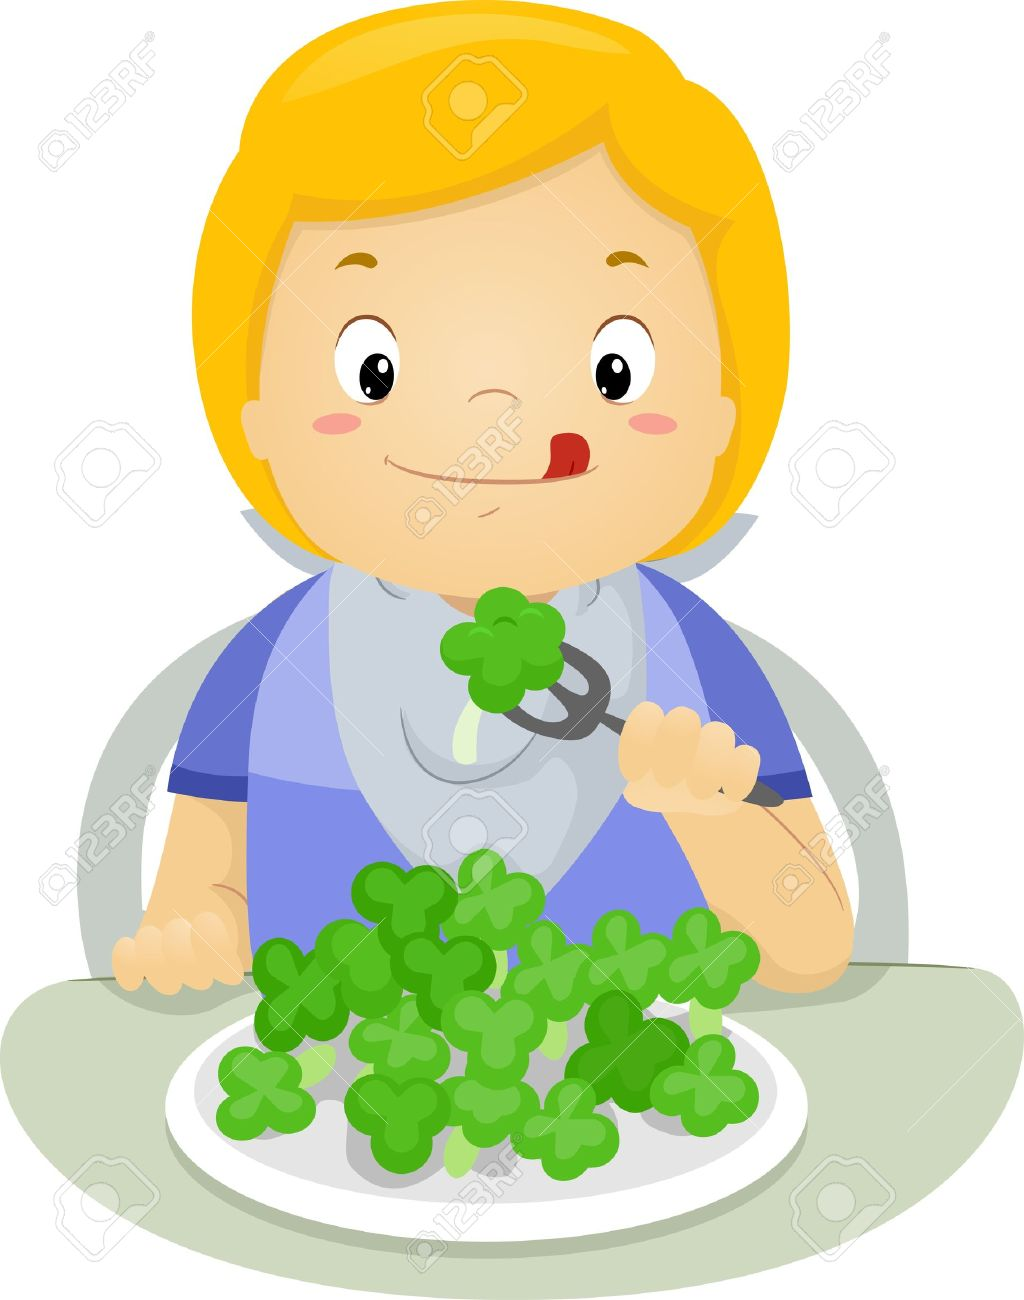 Illustration Of A Boy Eating Brocolli Stock Photo, Picture And.